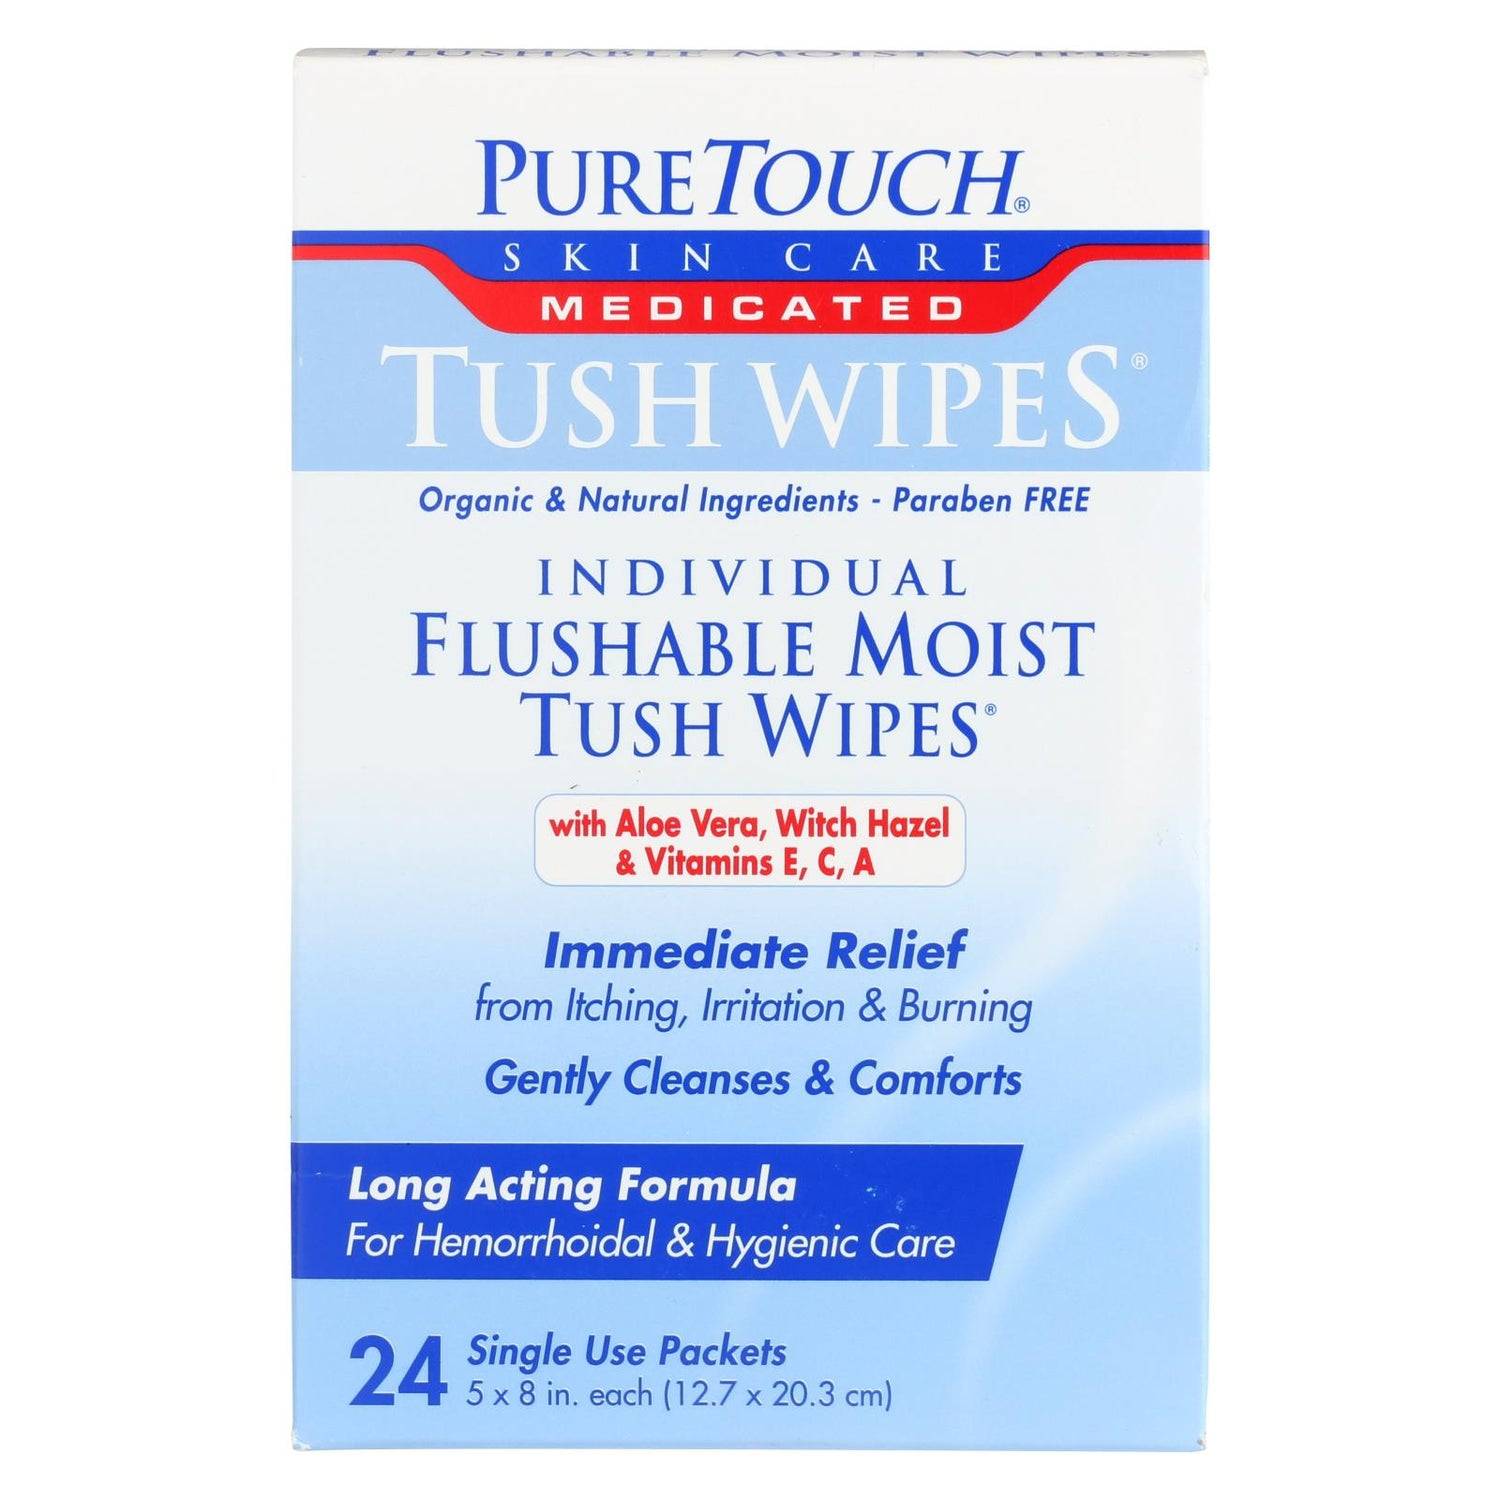 Puretouch Individual Flushable Moist Tush Wipes - 24 Packets